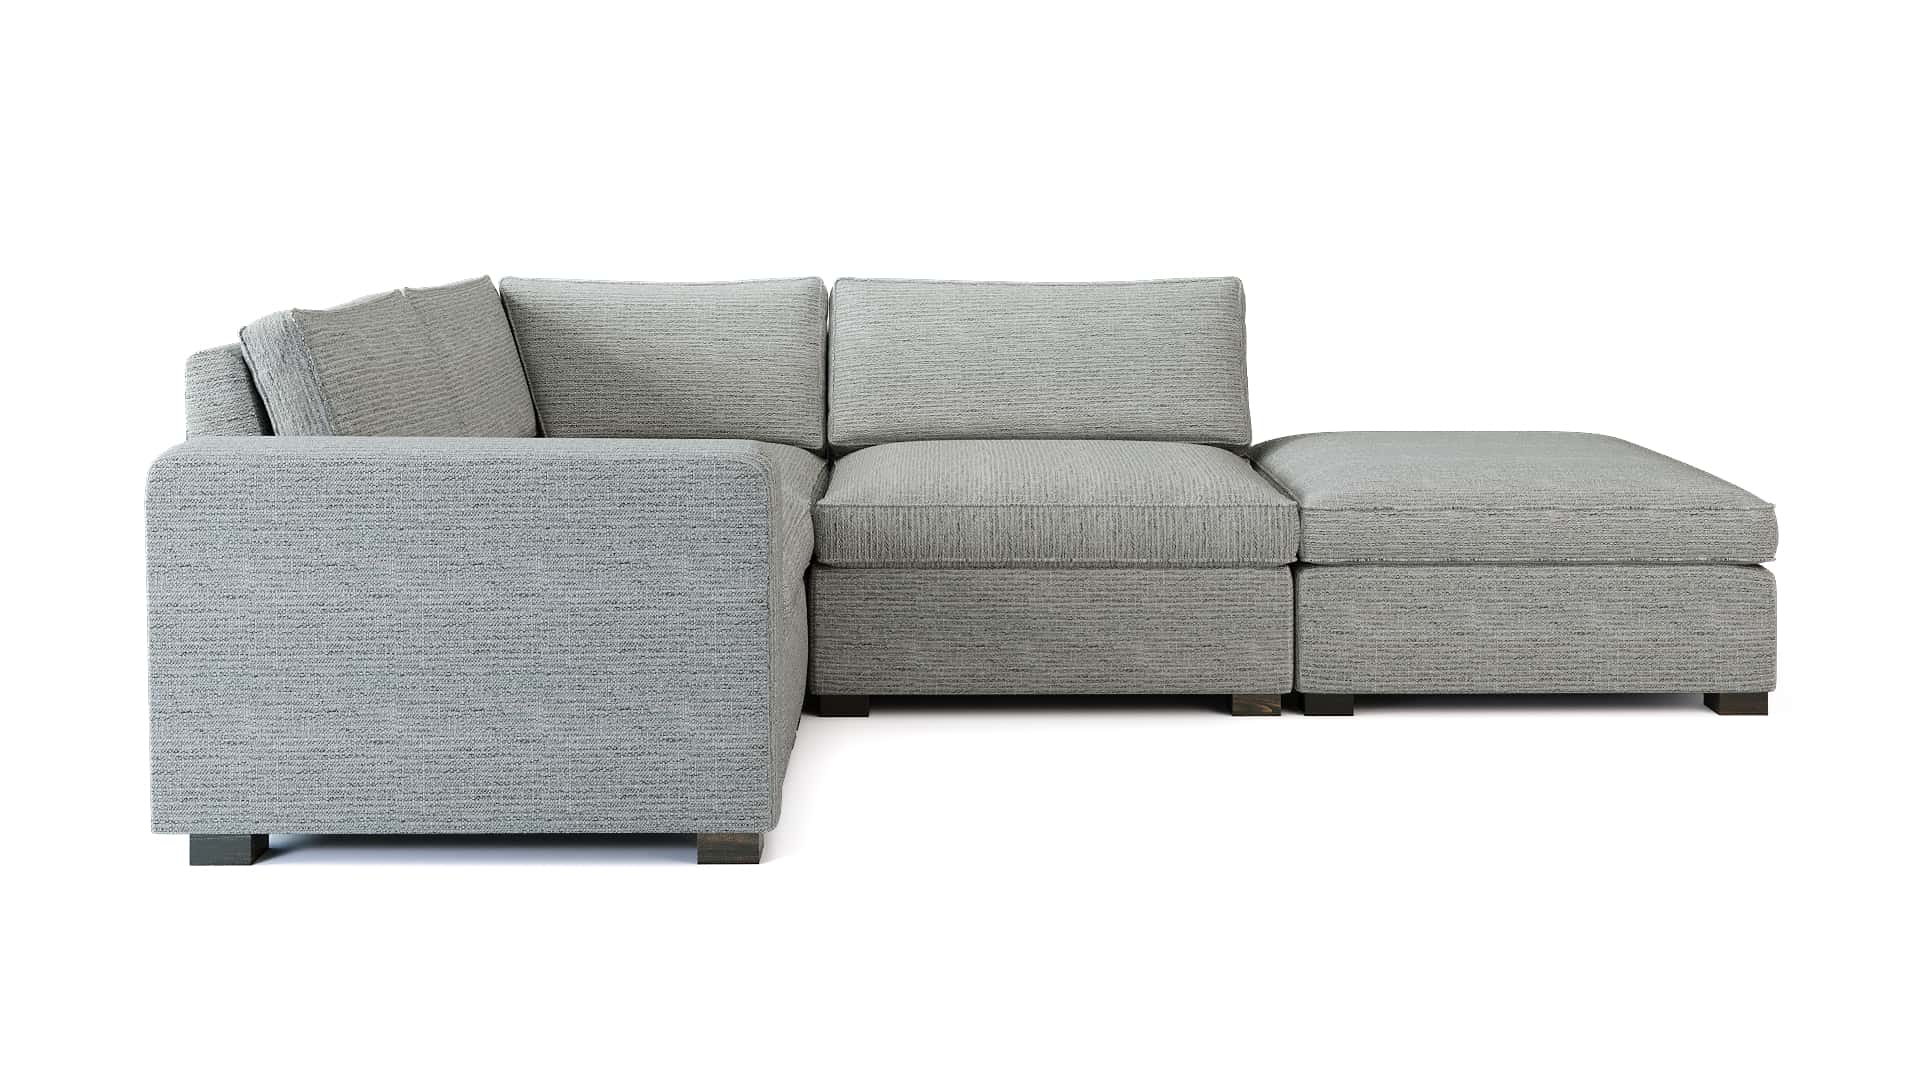 Toba Corner Sofa Side View WHITE BG